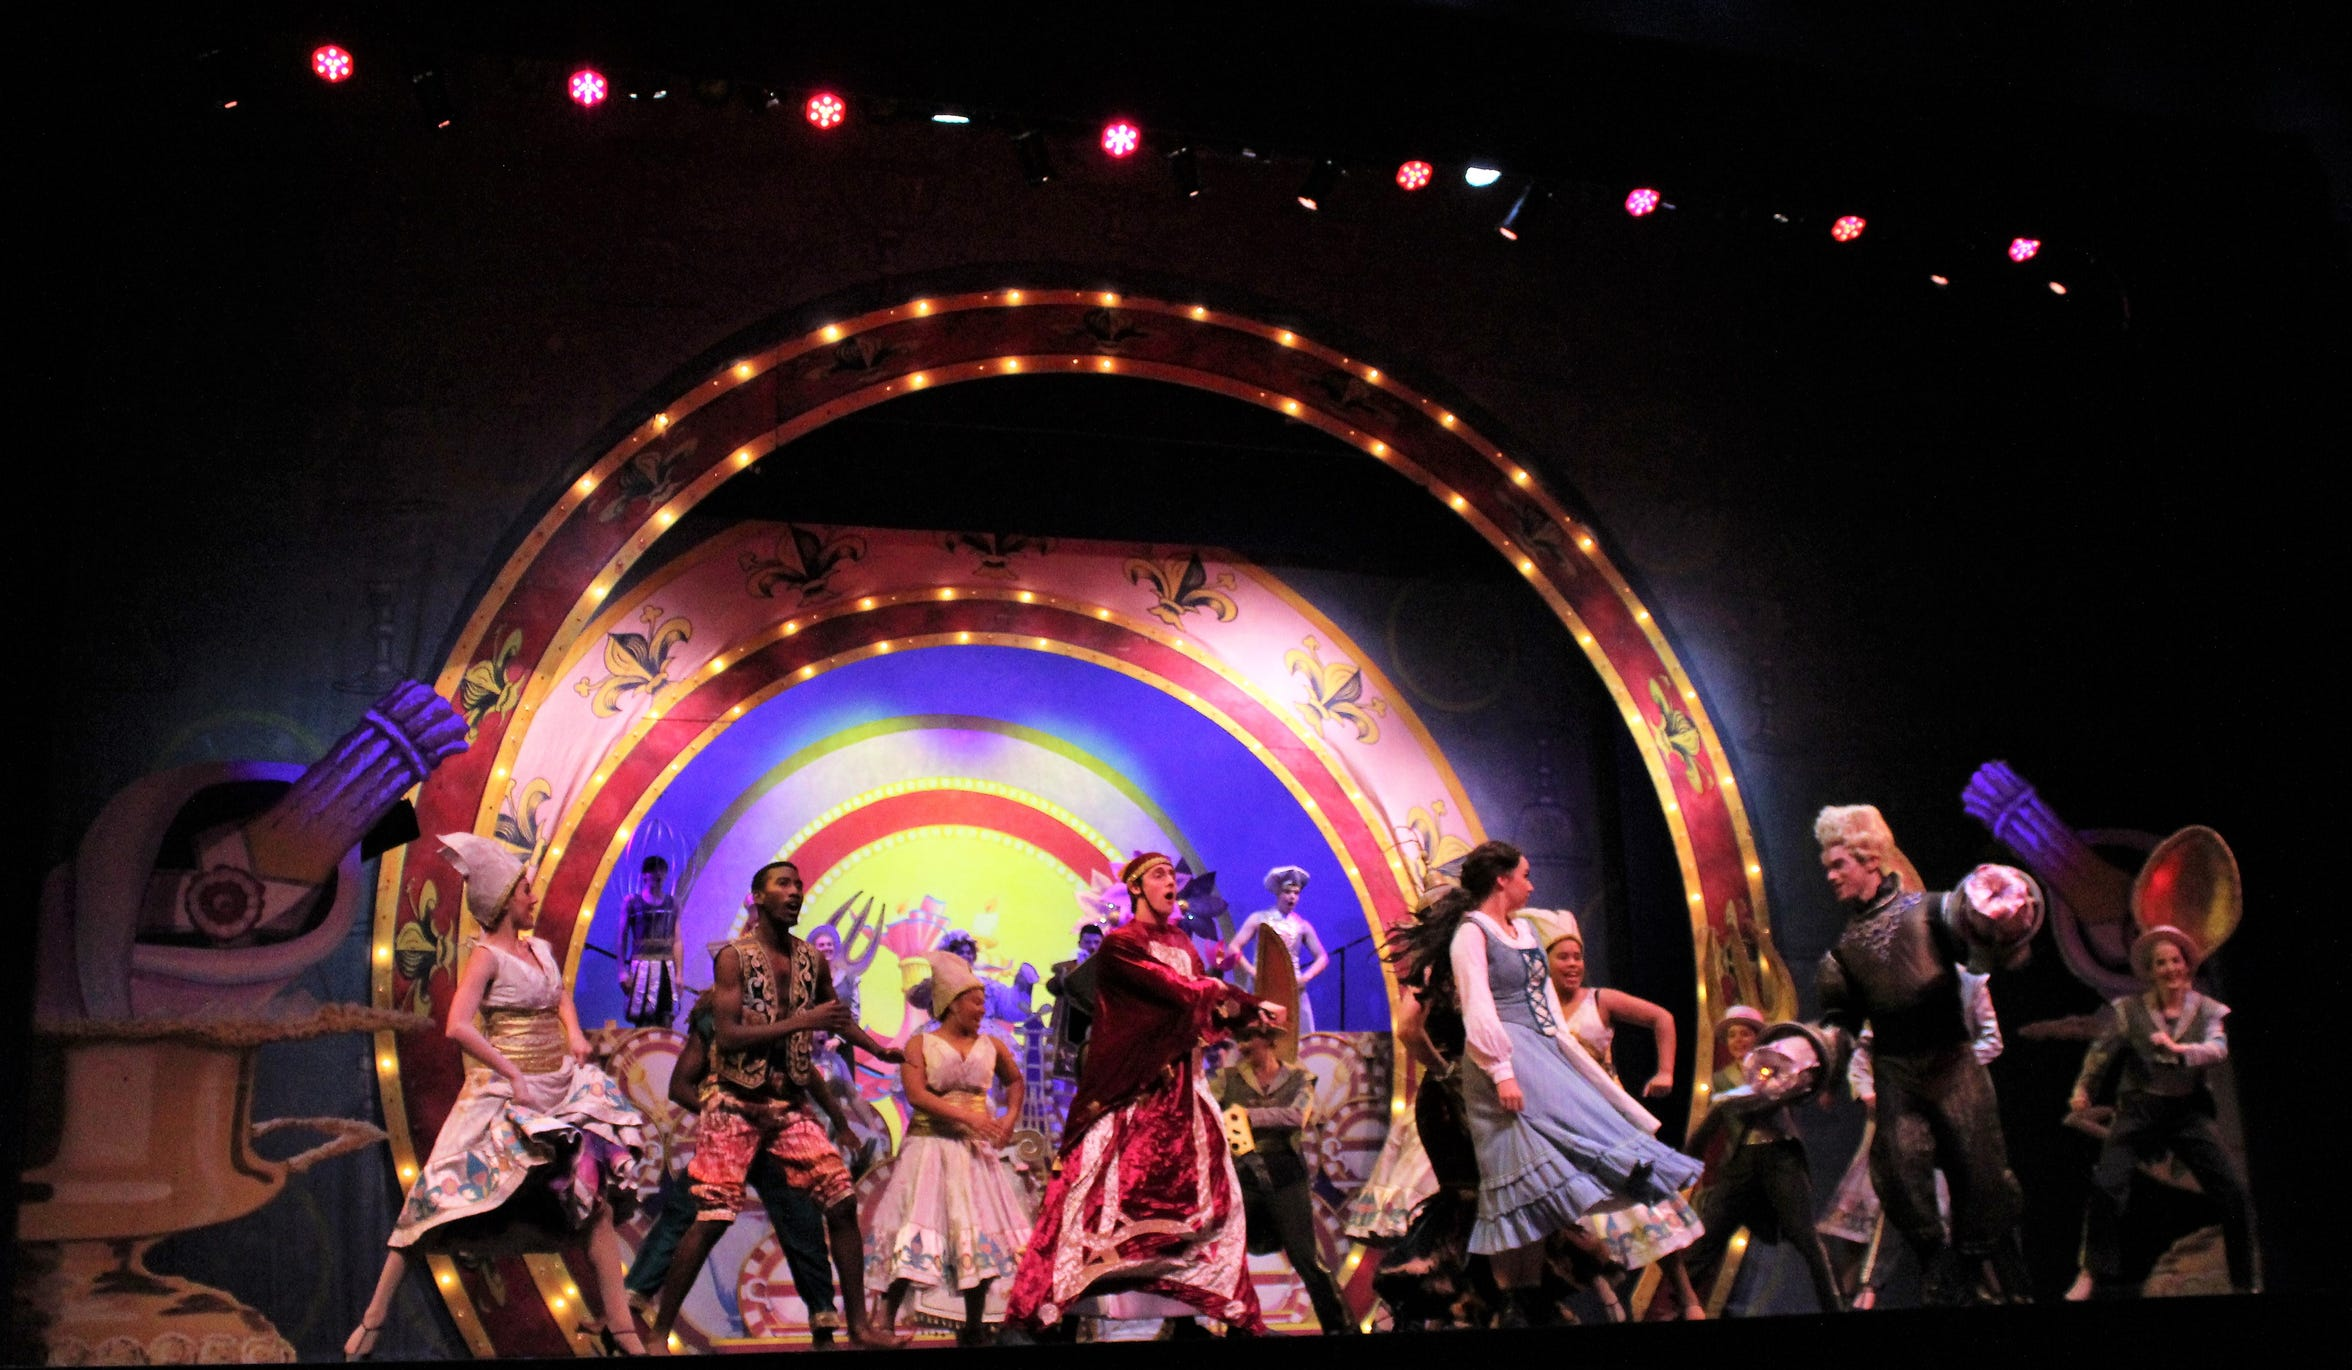 """""""Be Our Guest"""" is a highlight of """"Beauty and the Beast,"""" showcasing singing, creative costumes and Abilene Christian's newfound dancing talents. The homecoming musical will be performed three times this weekend at the Abilene Convention Center."""